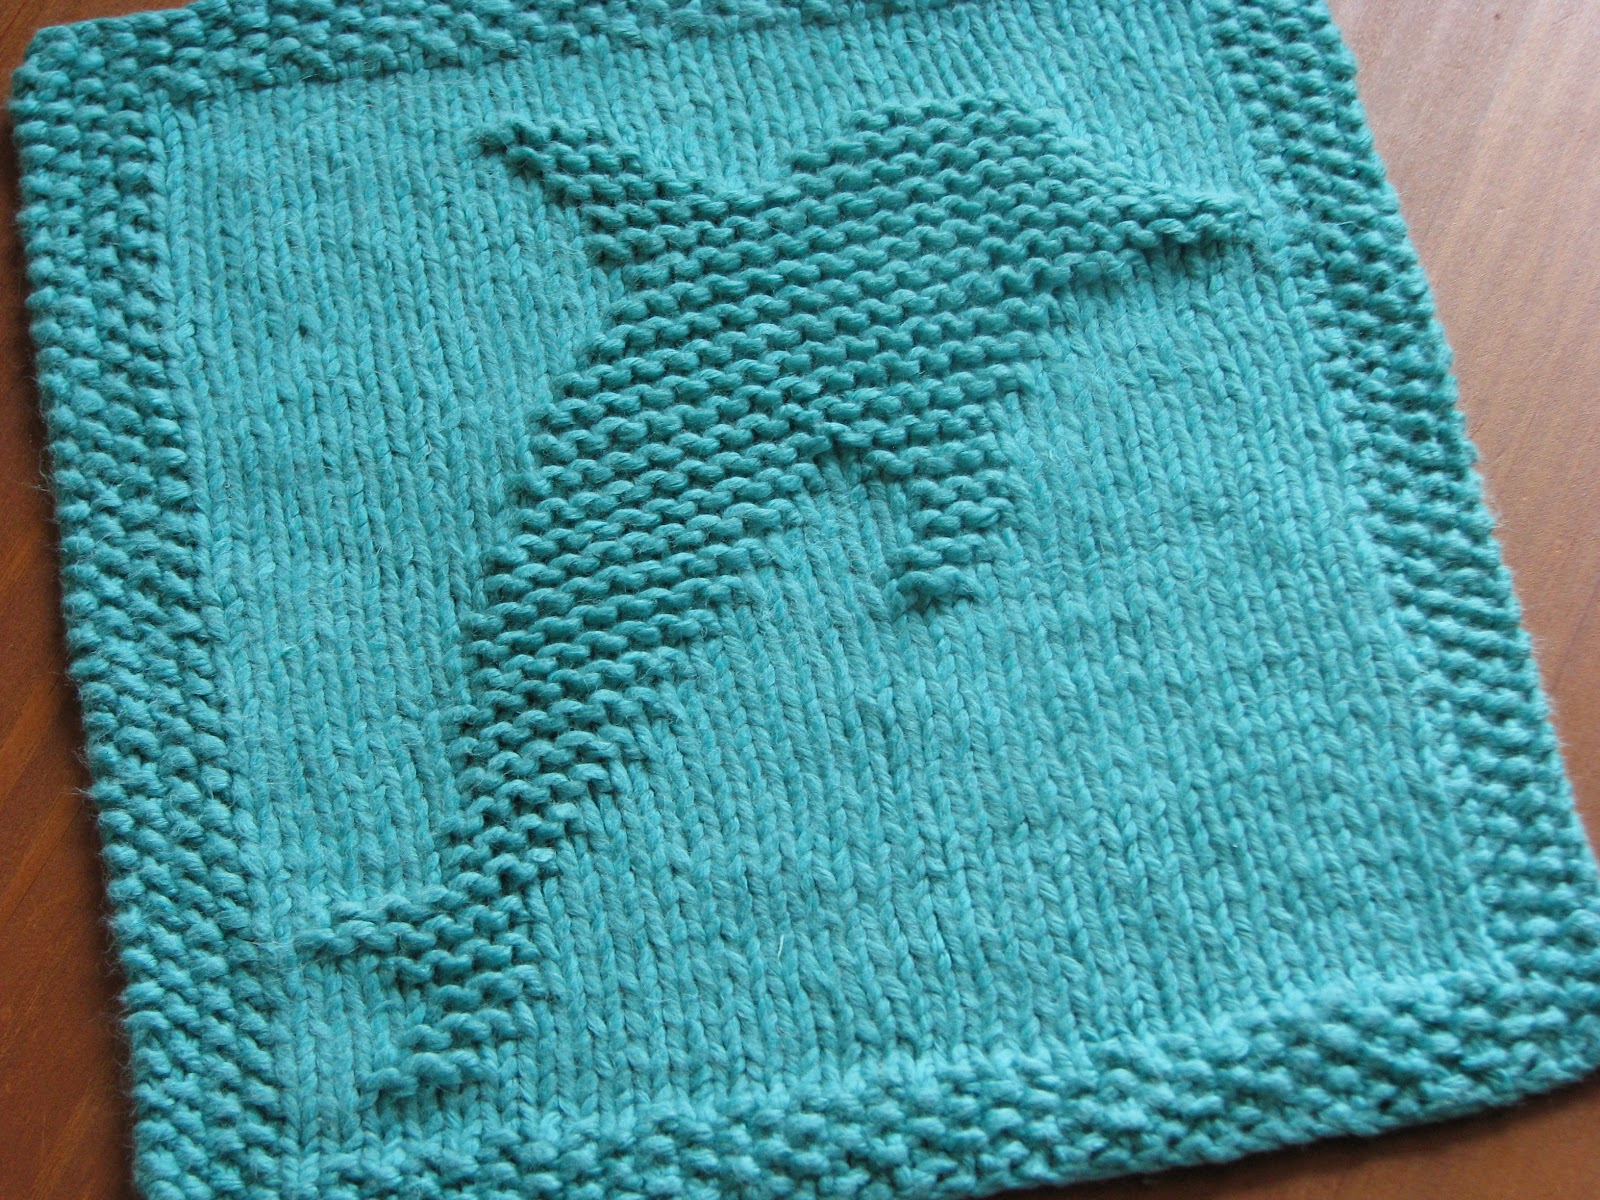 Dishcloth Knit Patterns Free : One Crafty Mama: Dolphin Dishcloth